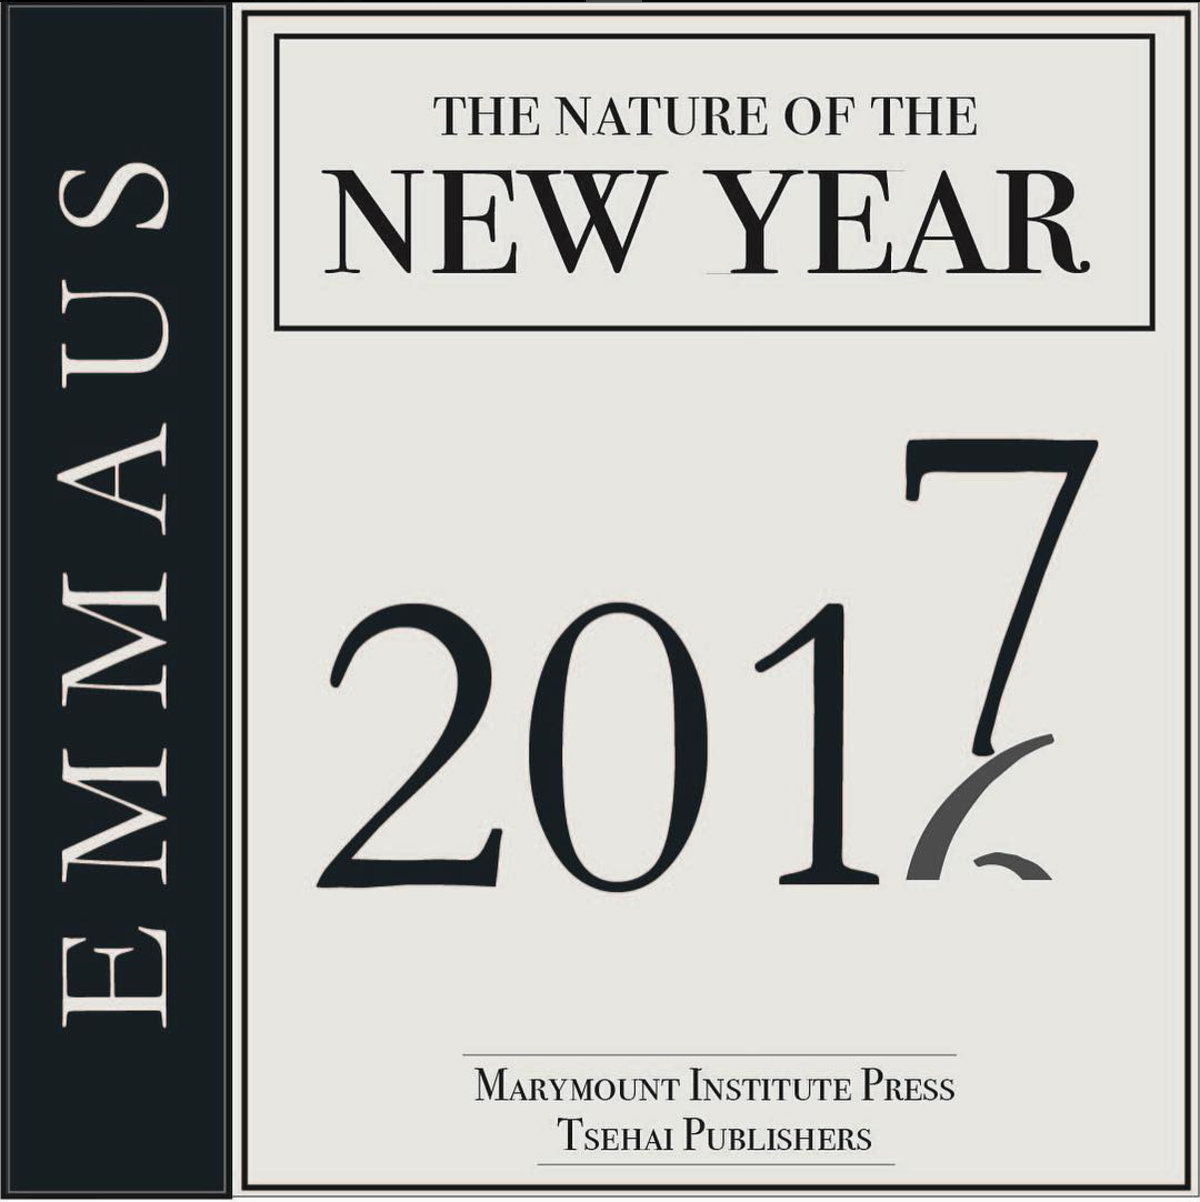 Happy New Year! With a new year comes exciting new announcements for Emmaus!